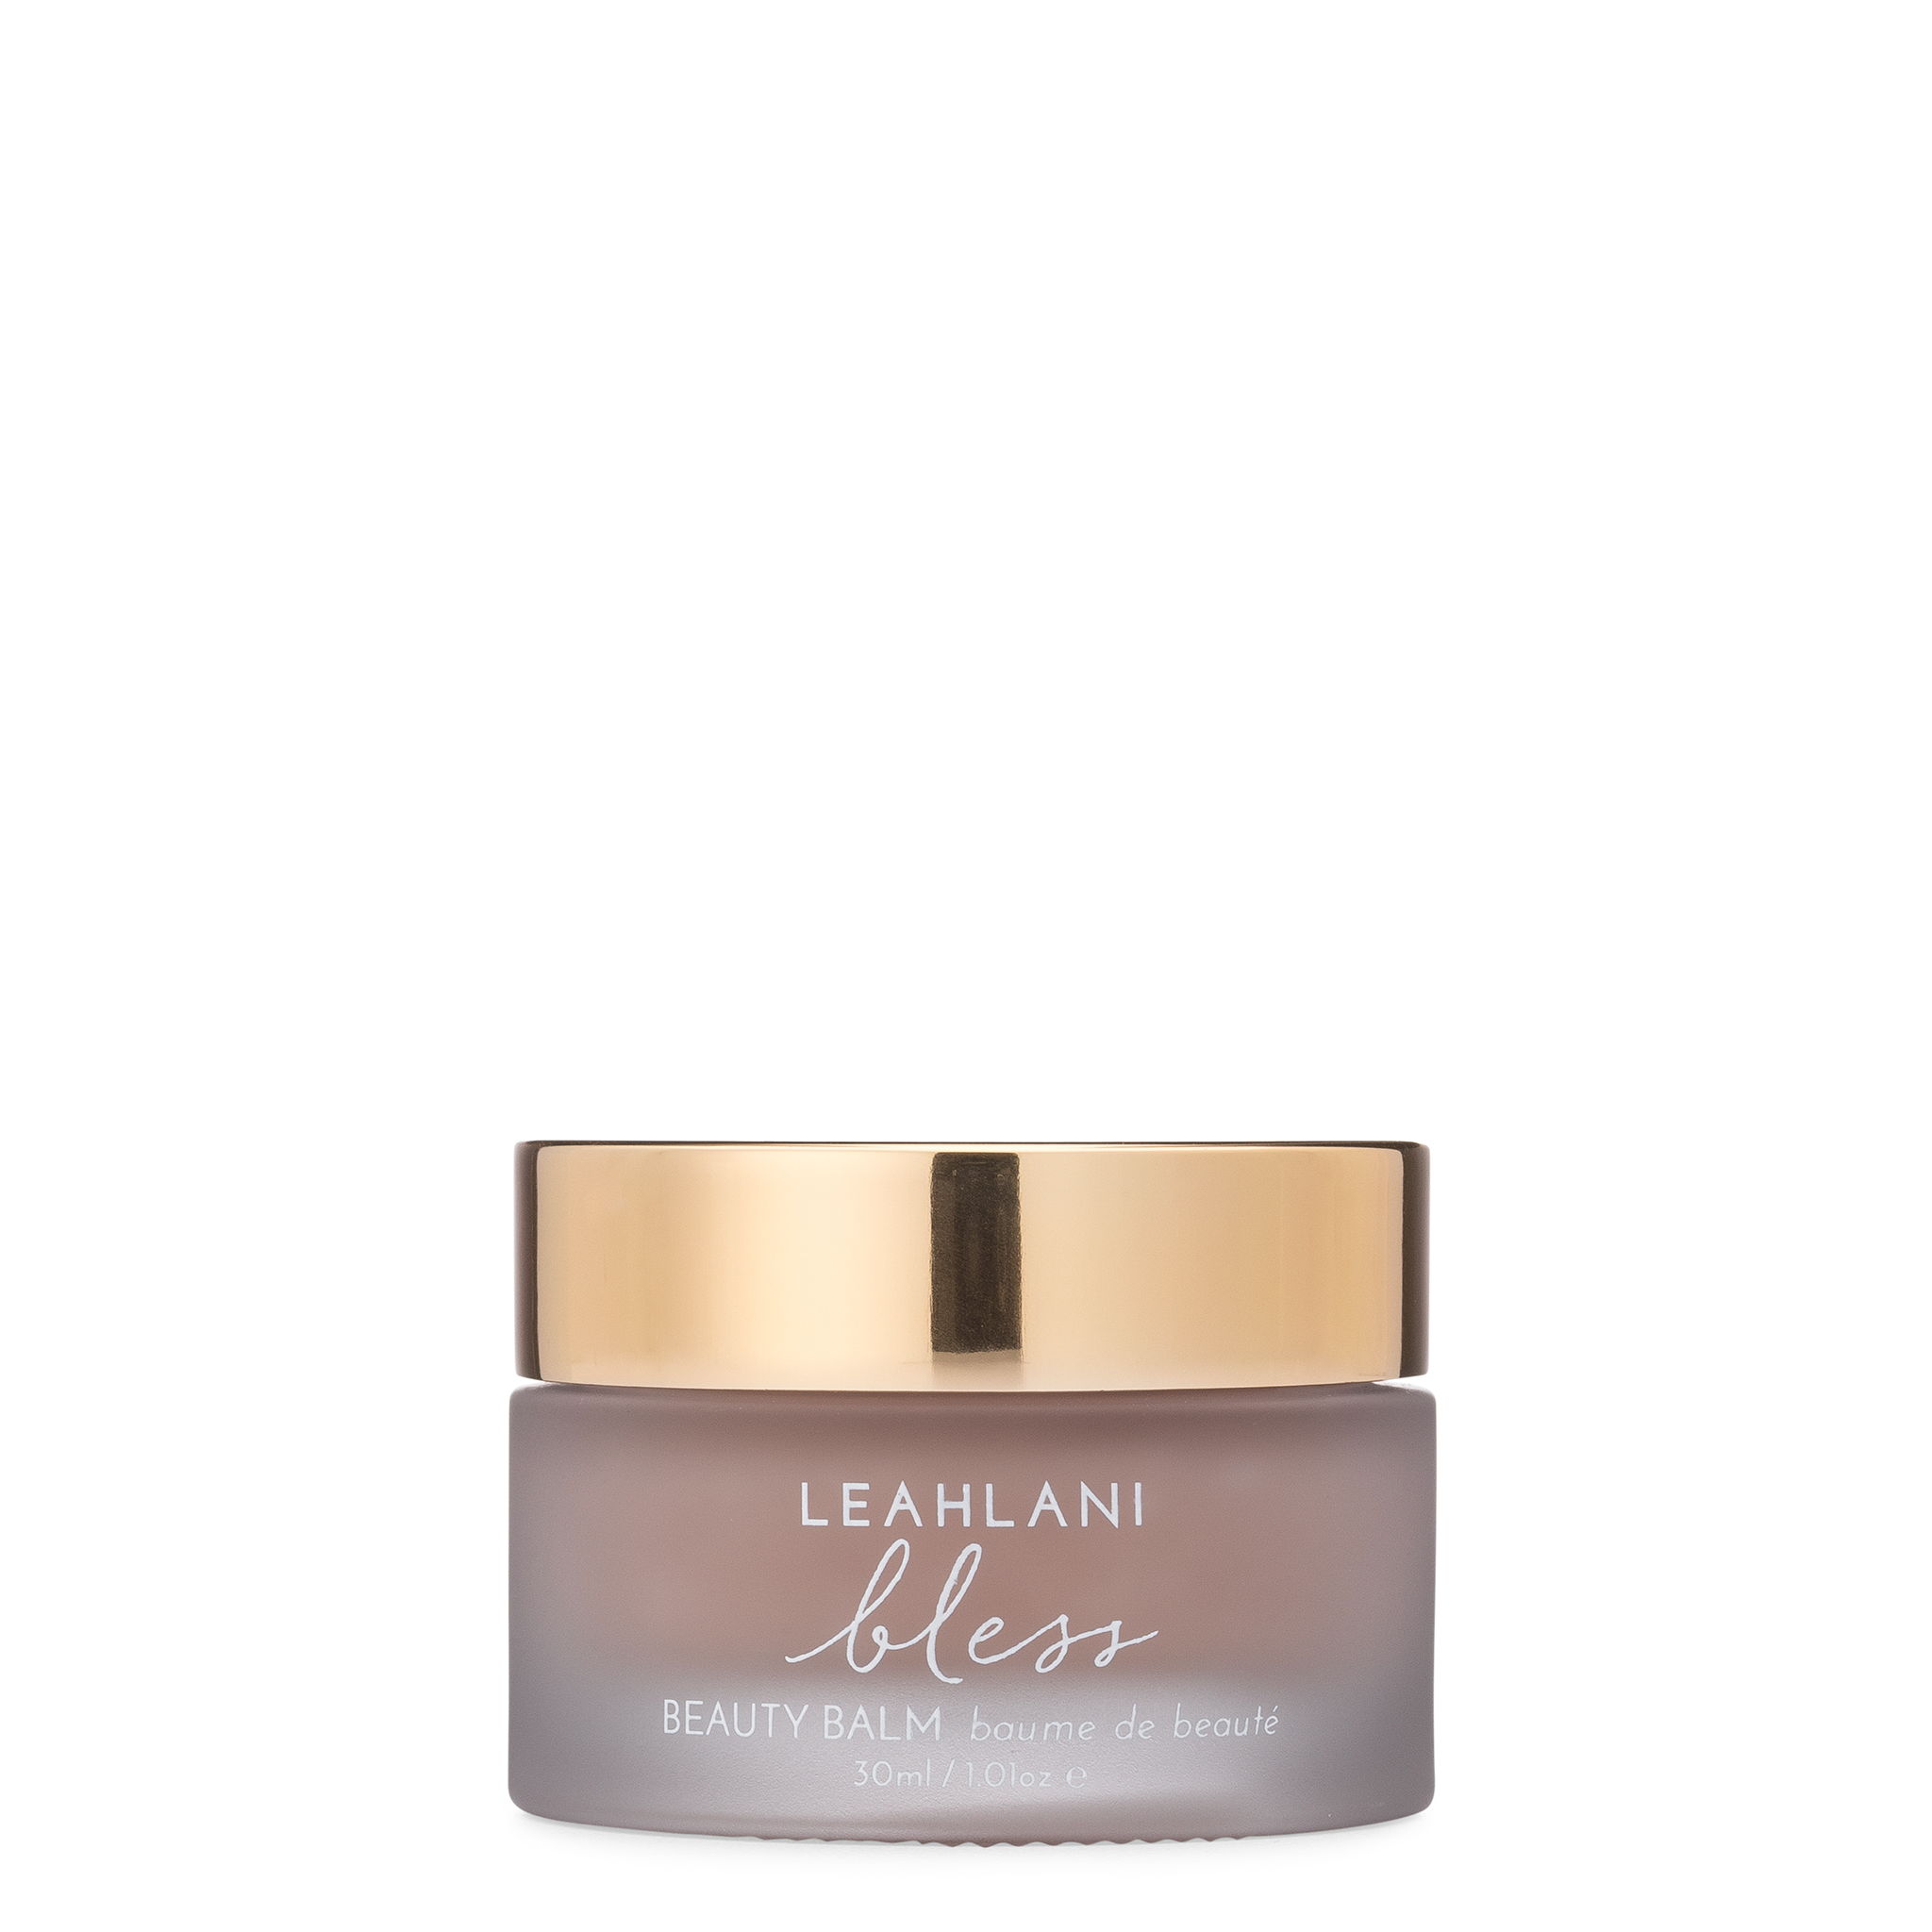 Leahlani Skincare - Bless Beauty Balm